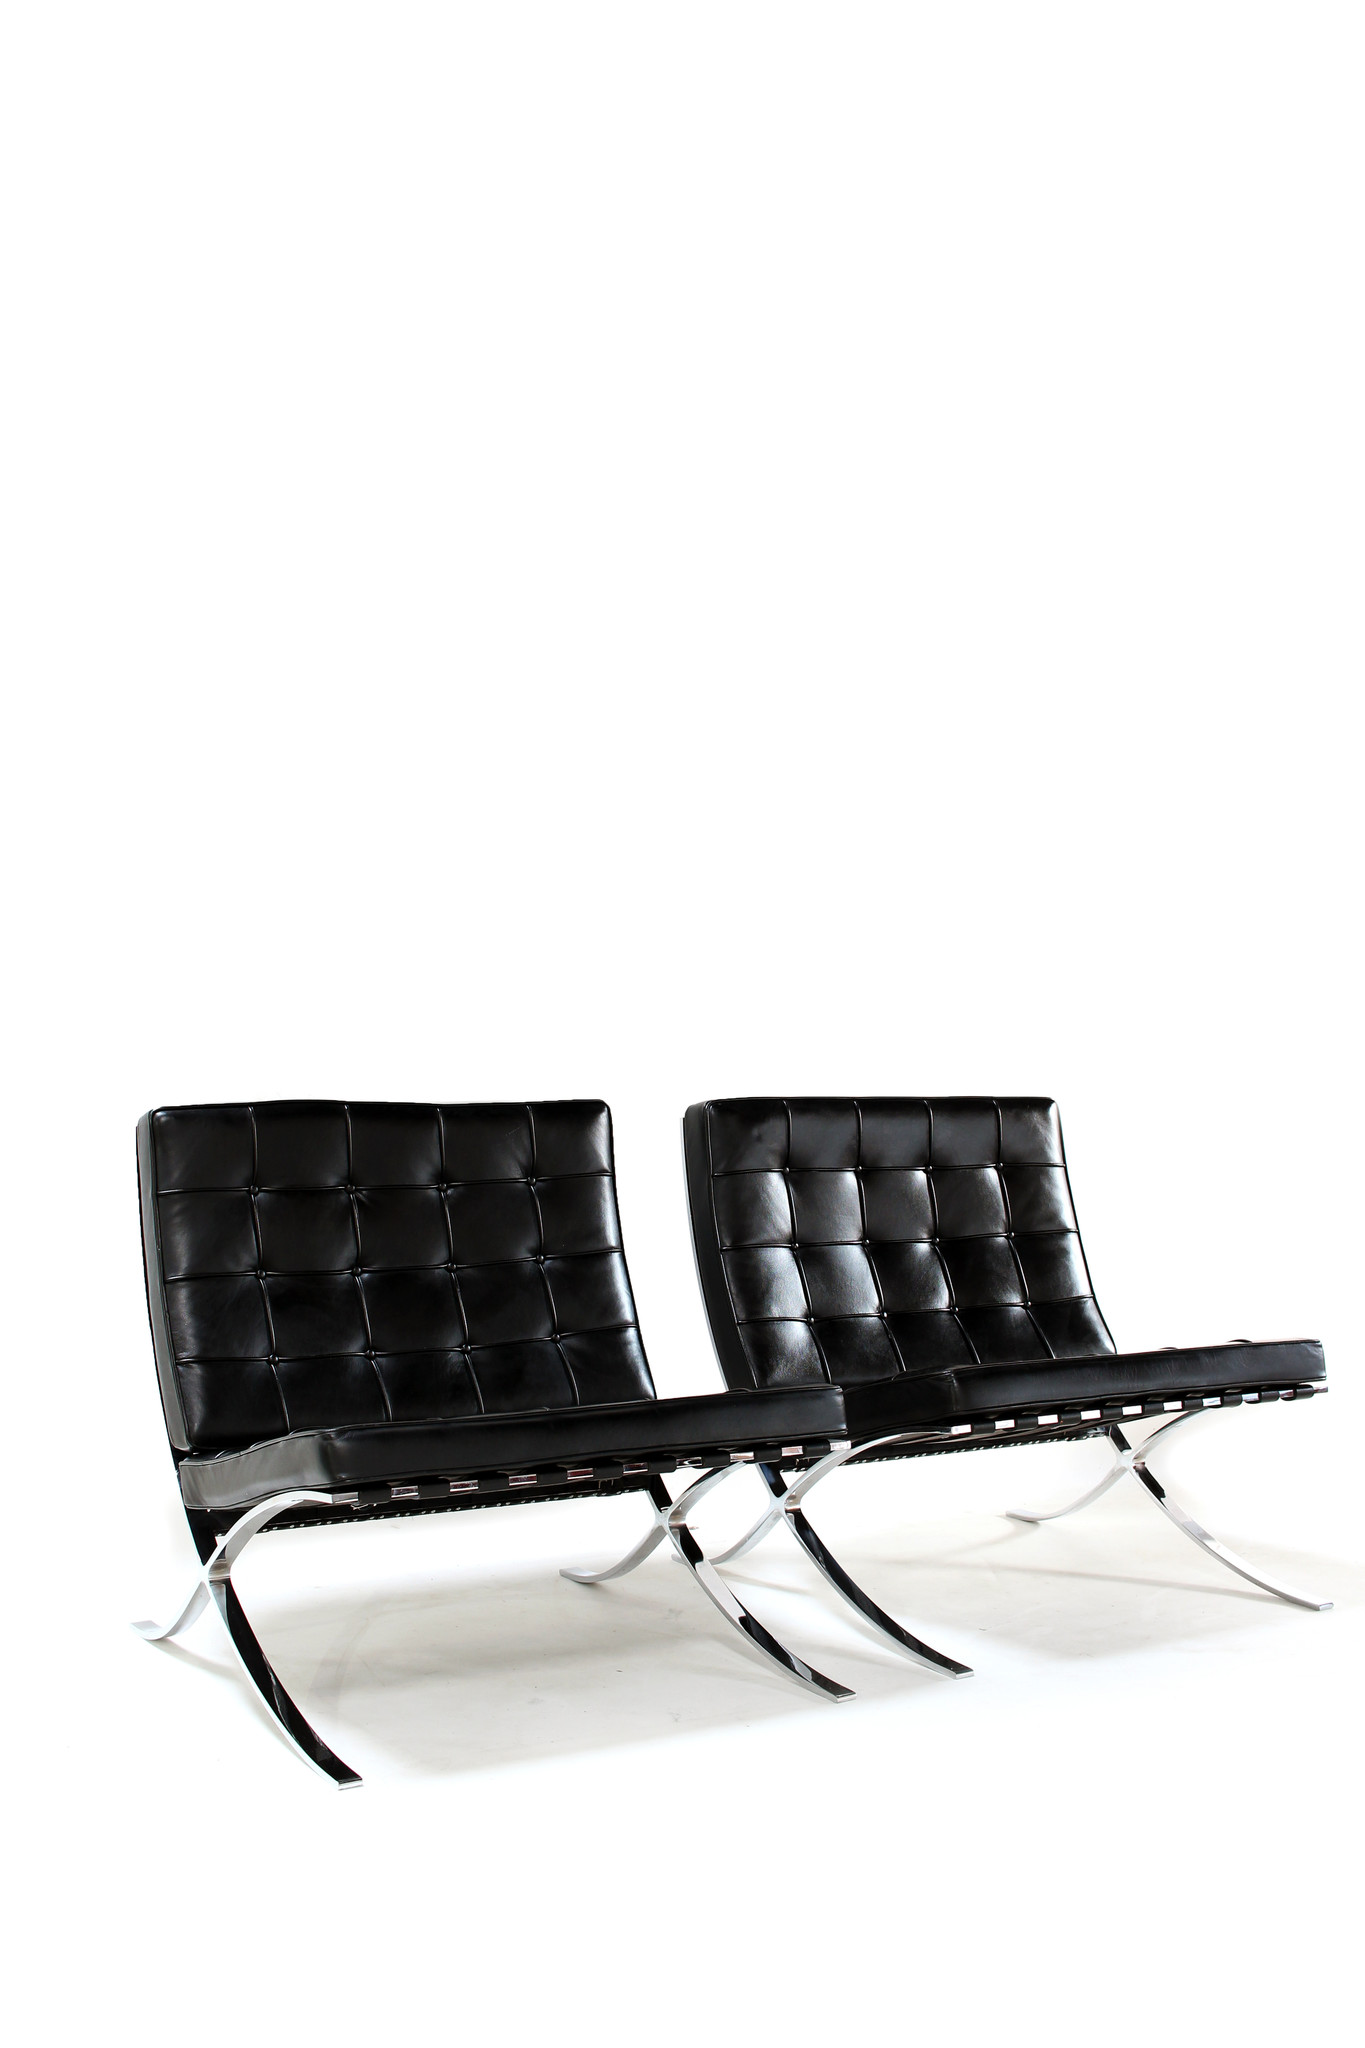 Set of 2 Barcelona Chairs for Knoll designed by Mies Van der Rohe